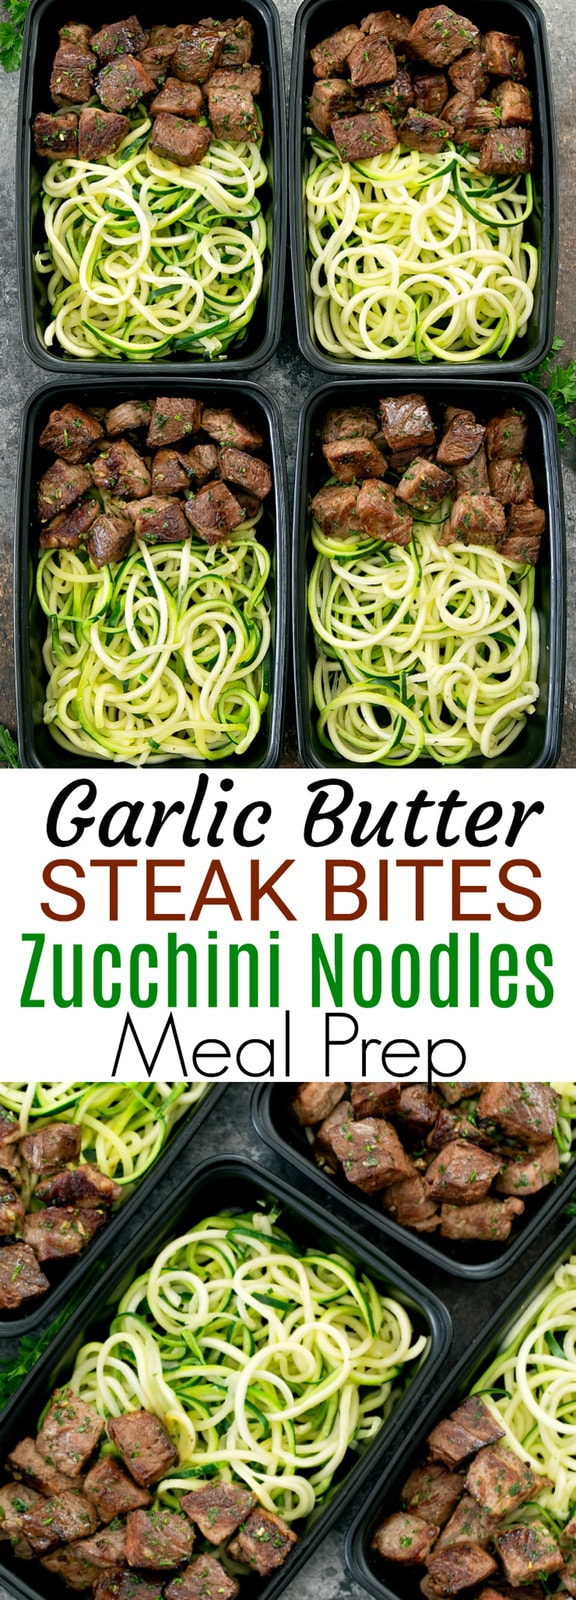 Garlic Butter Steak Bites with Zucchini Noodles Meal Prep. A low carb, flavorful and easy dish. Seared steak is tossed in garlic butter sauce and served with garlic butter zucchini noodles. This dish comes together in about 30 minutes.